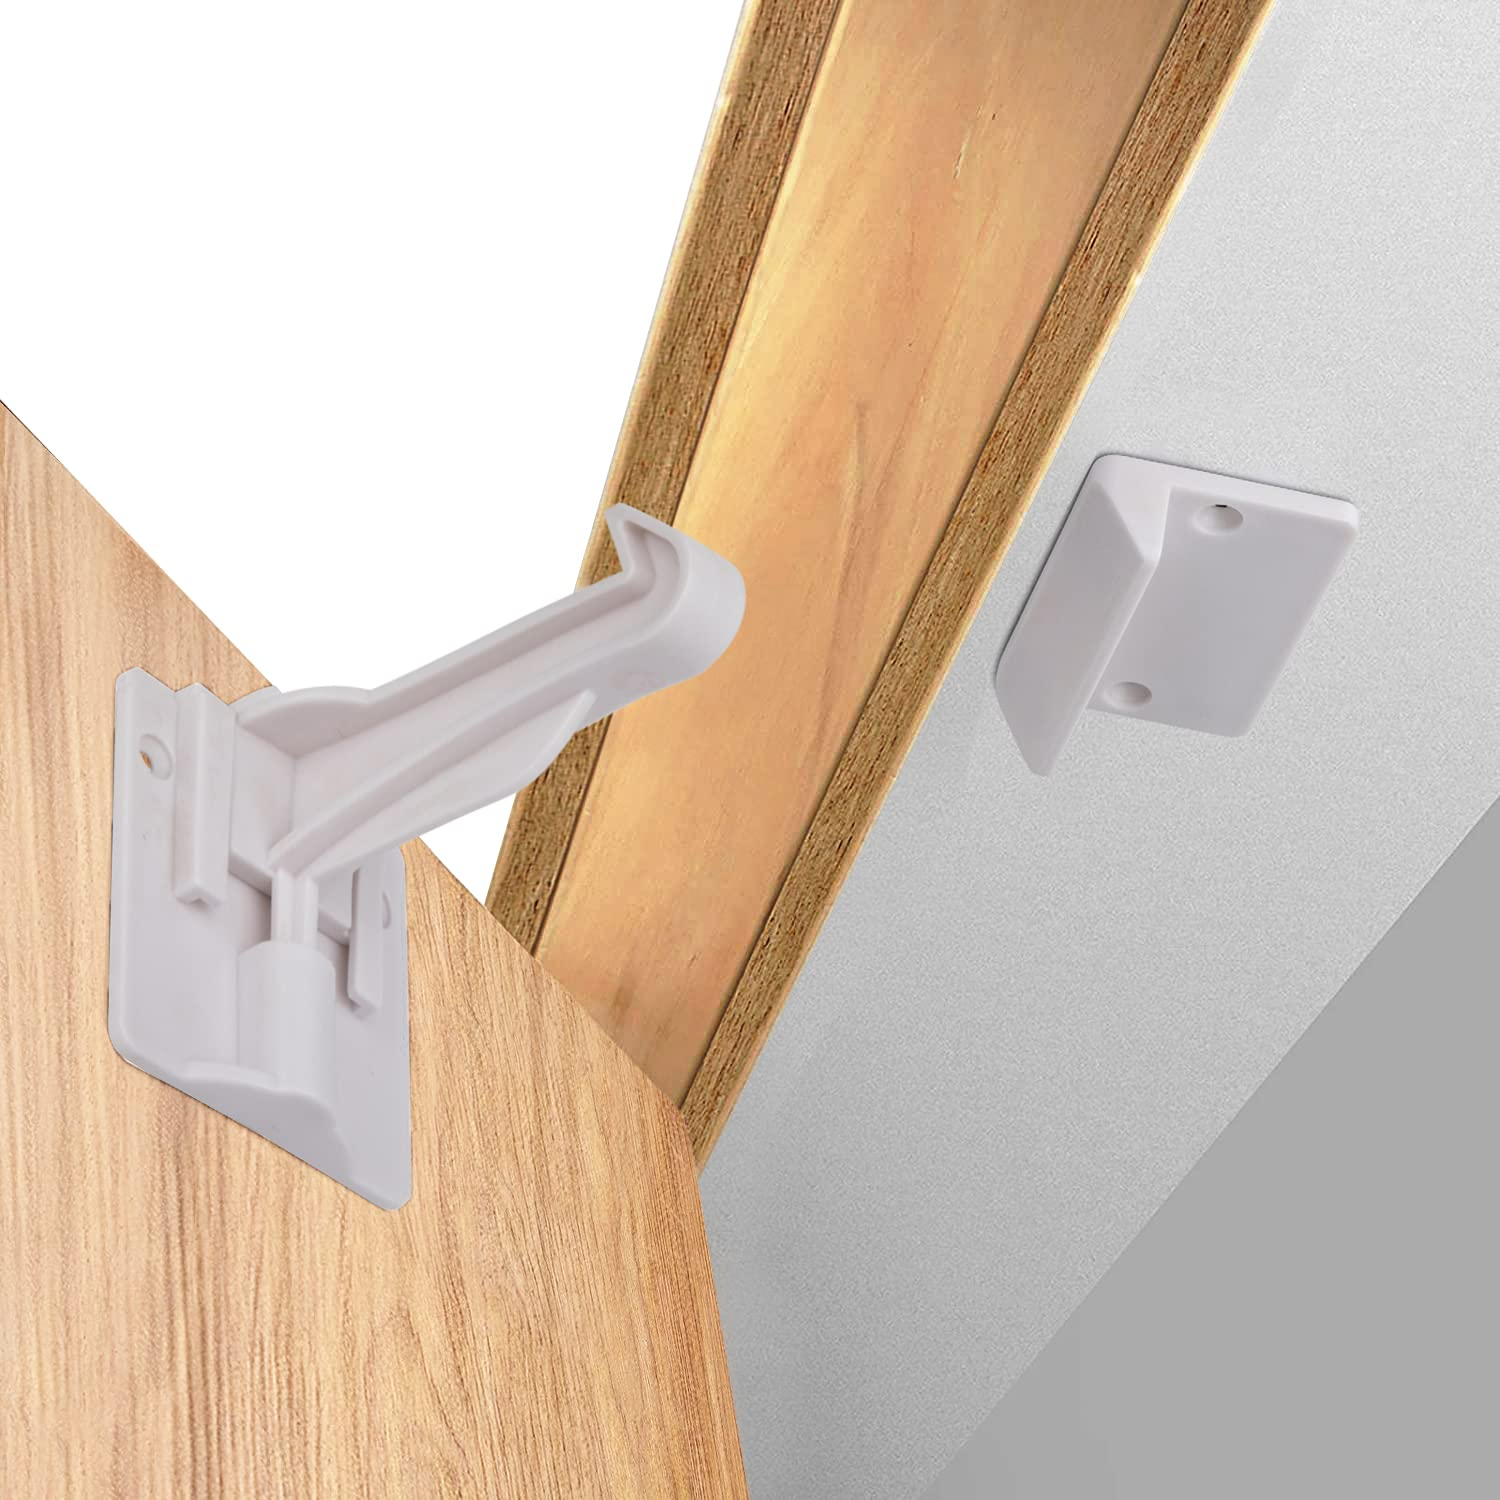 Upgraded Child Cabinet Safety Lock Latches (12 Pack) Baby Proof Locks for Cabinet and Drawers, NO Tools, Screws, Drilling Required. Easy to Install with Strong Tape on The Back.